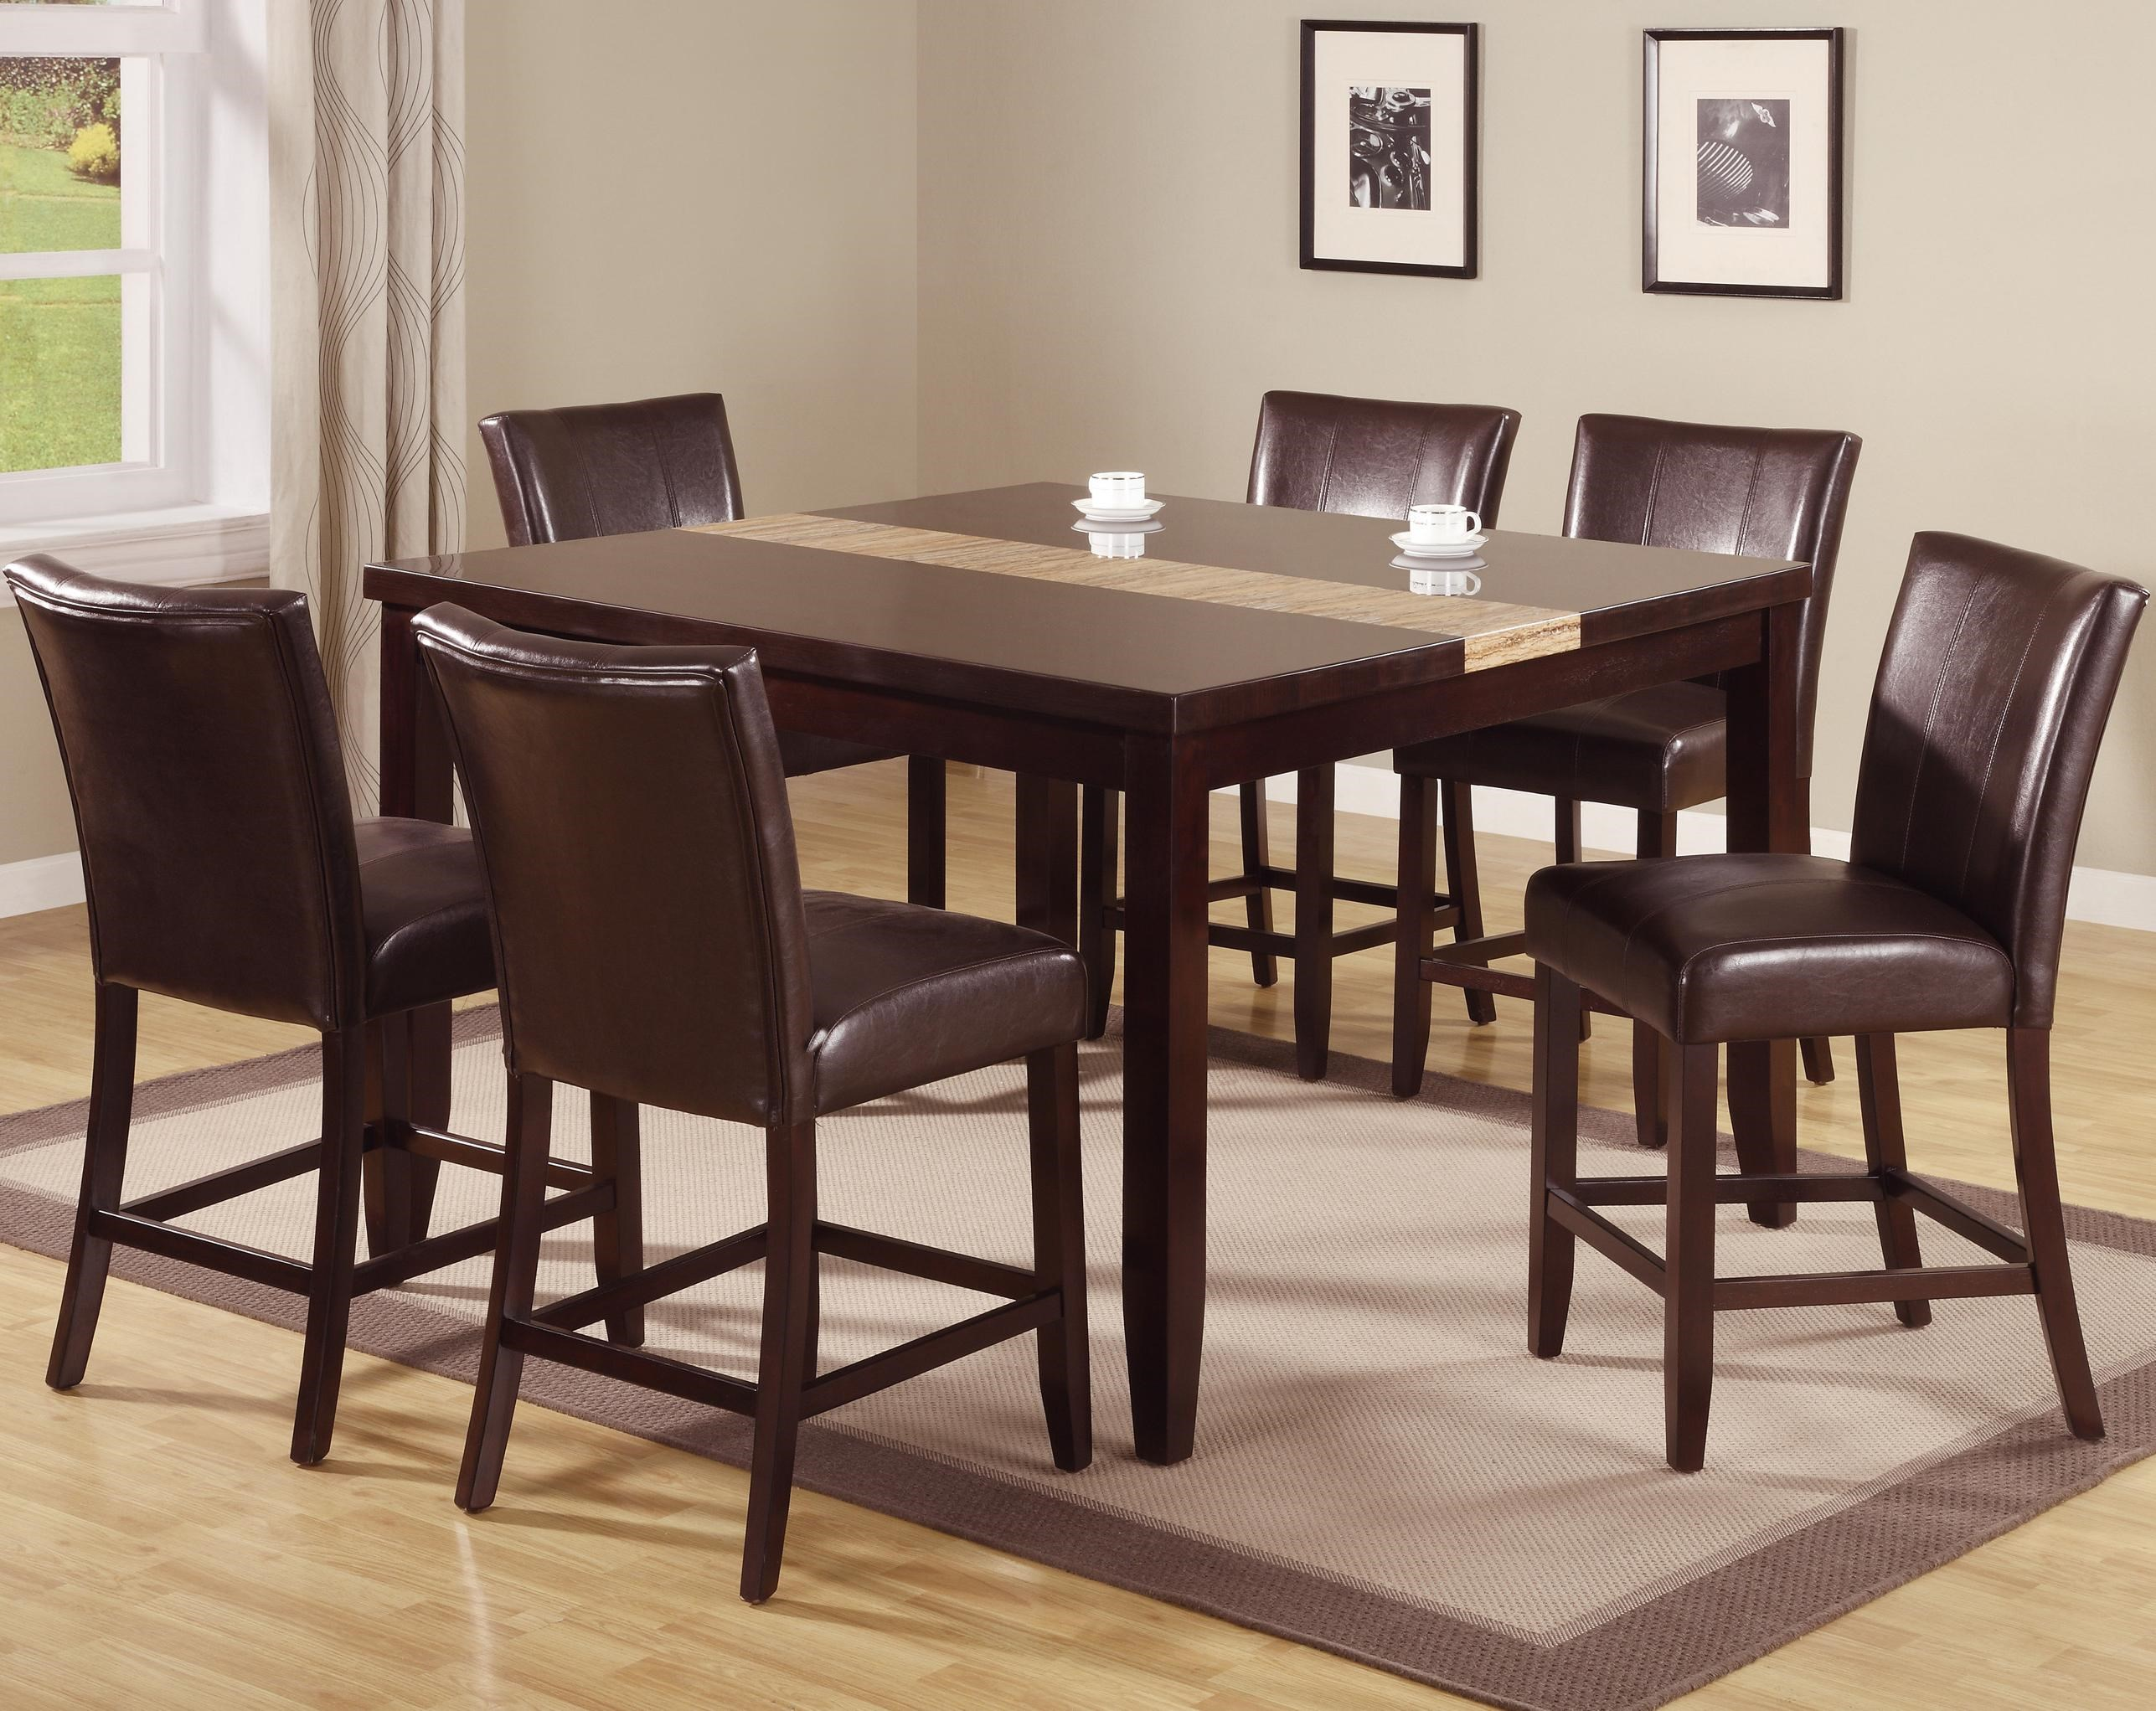 Crown Mark Madrid \u0026 Ferrara 7 Piece Pub Table Set with Upholstered Counter Chairs : 7 piece pub table set - pezcame.com